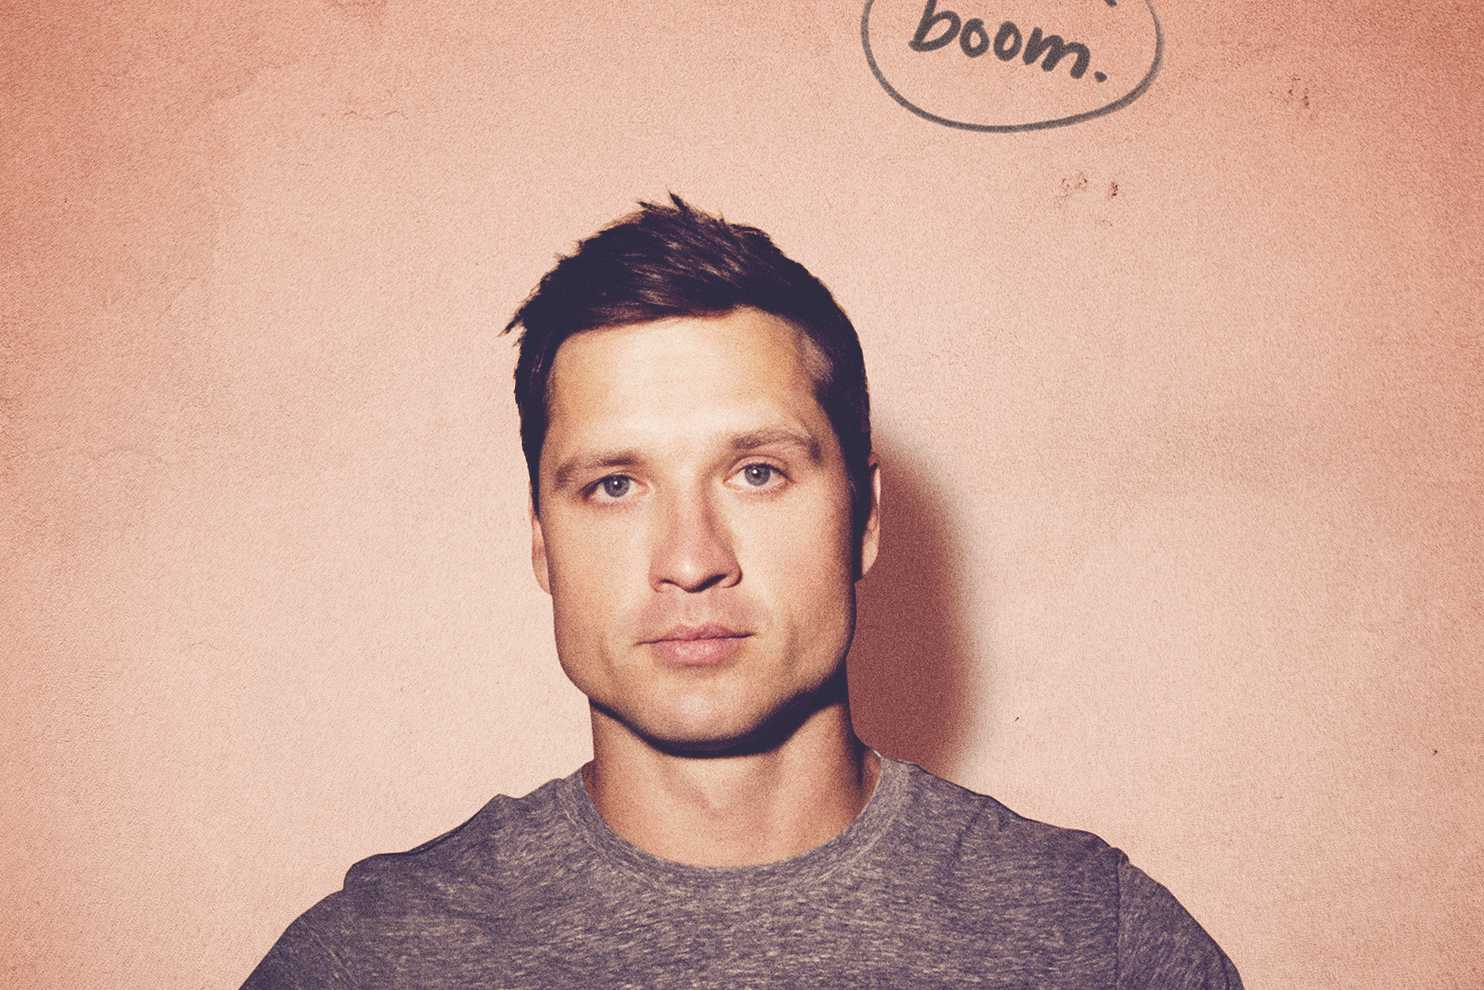 """SONY MUSIC Walker Hayes' debut album """"boom."""" comes out Dec. 8. The album includes his current single, """"You Broke Up With Me."""" Hayes will open the Thomas Rhett concert with Old Dominion Dec. 1 at the Swiftel Center."""